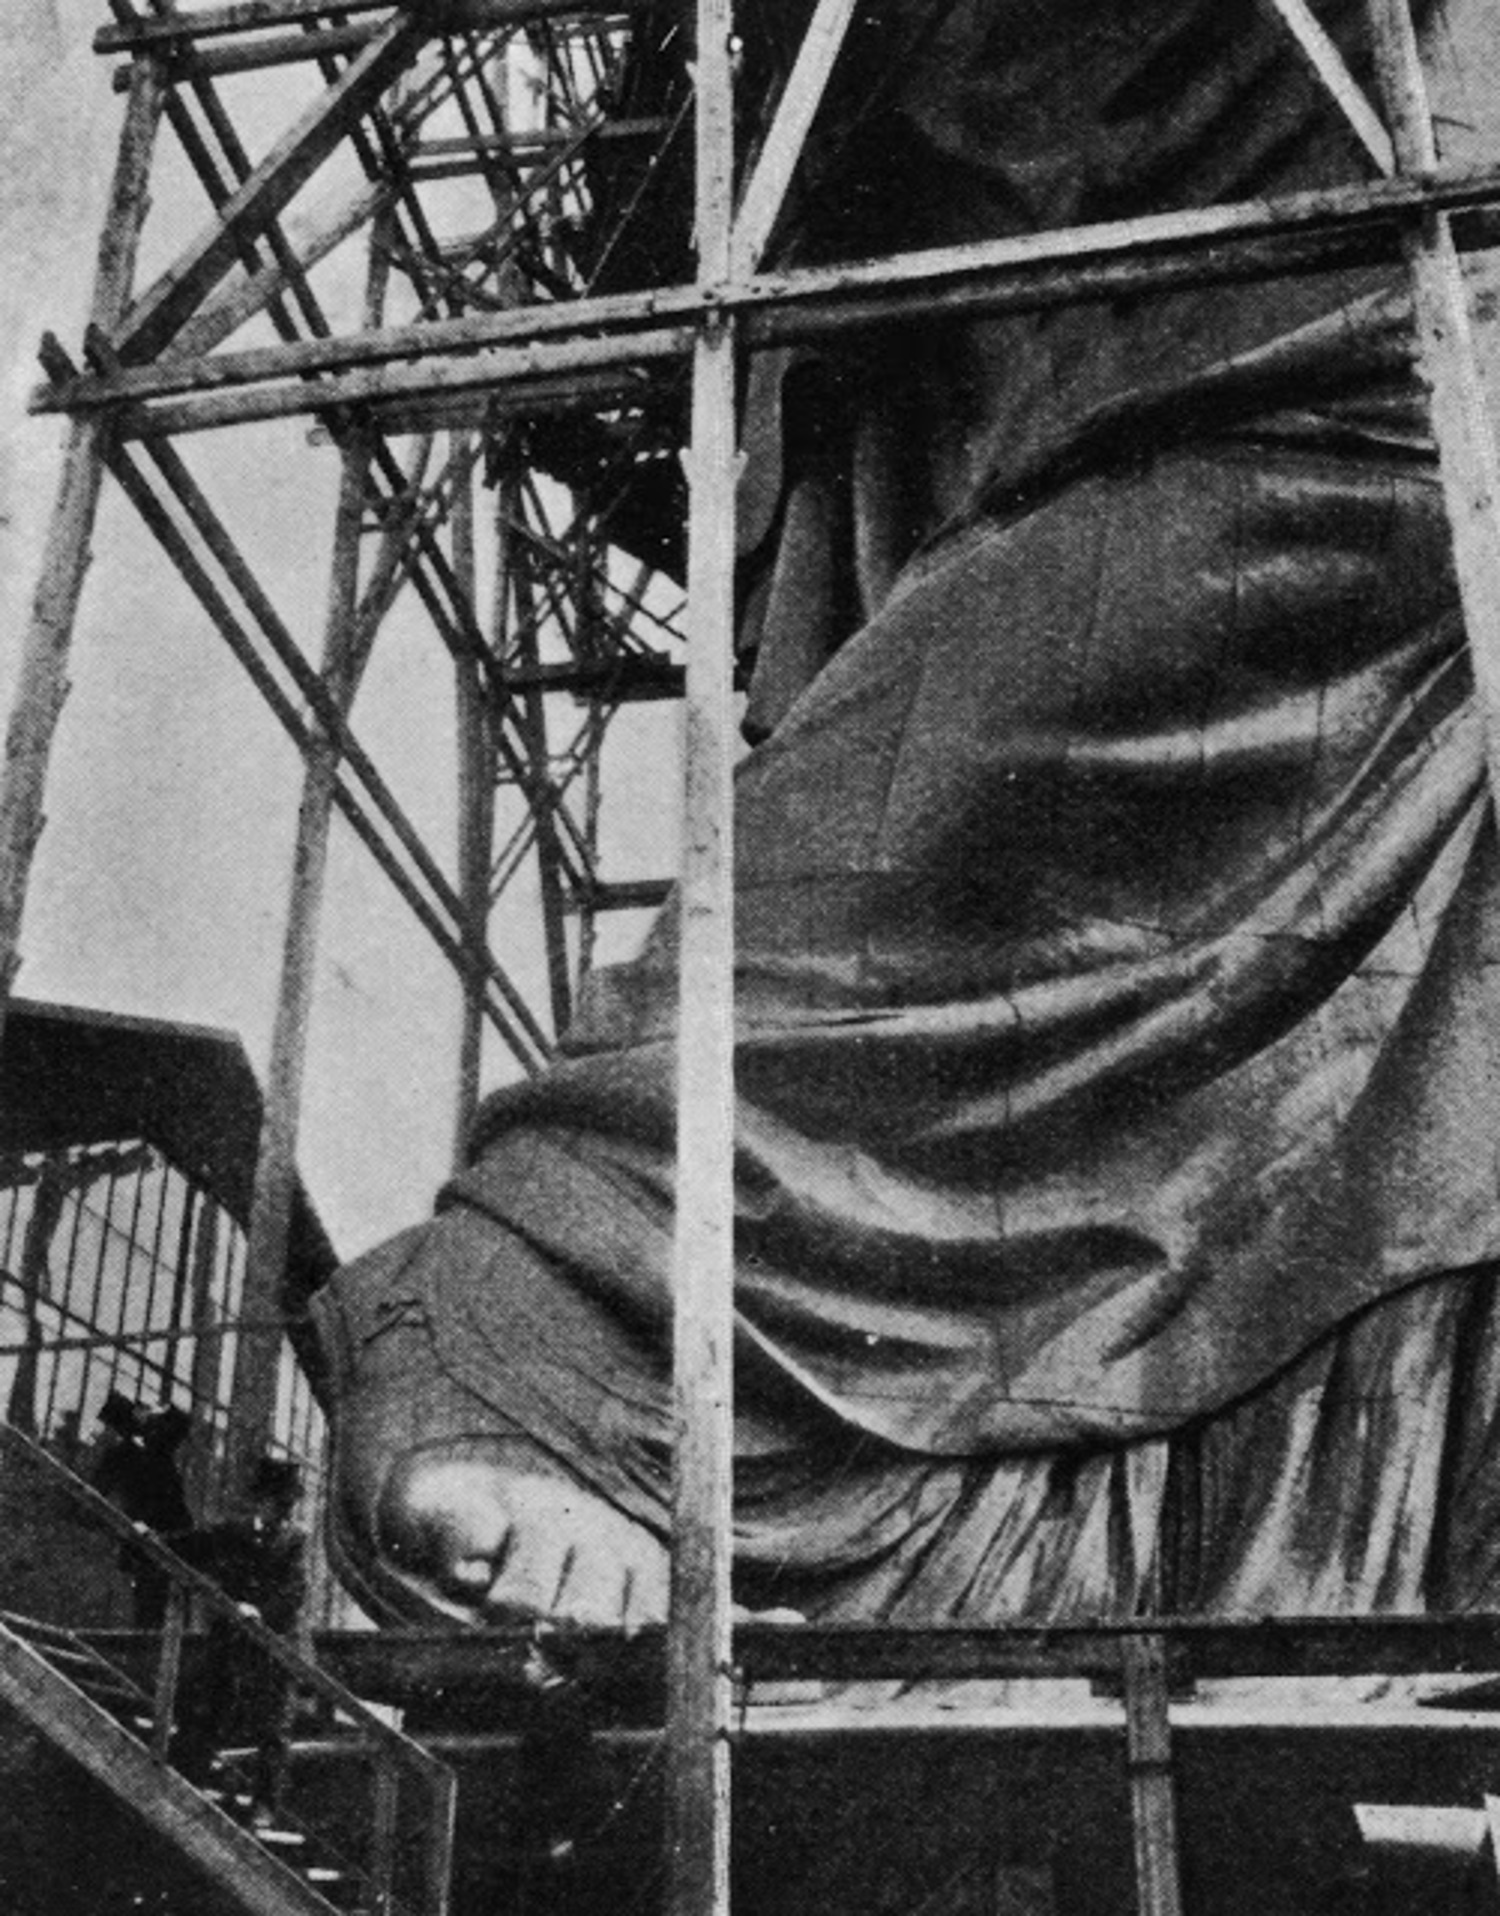 The construction of the Statue of Liberty in Paris, before its journey to the United States, circa 1883.